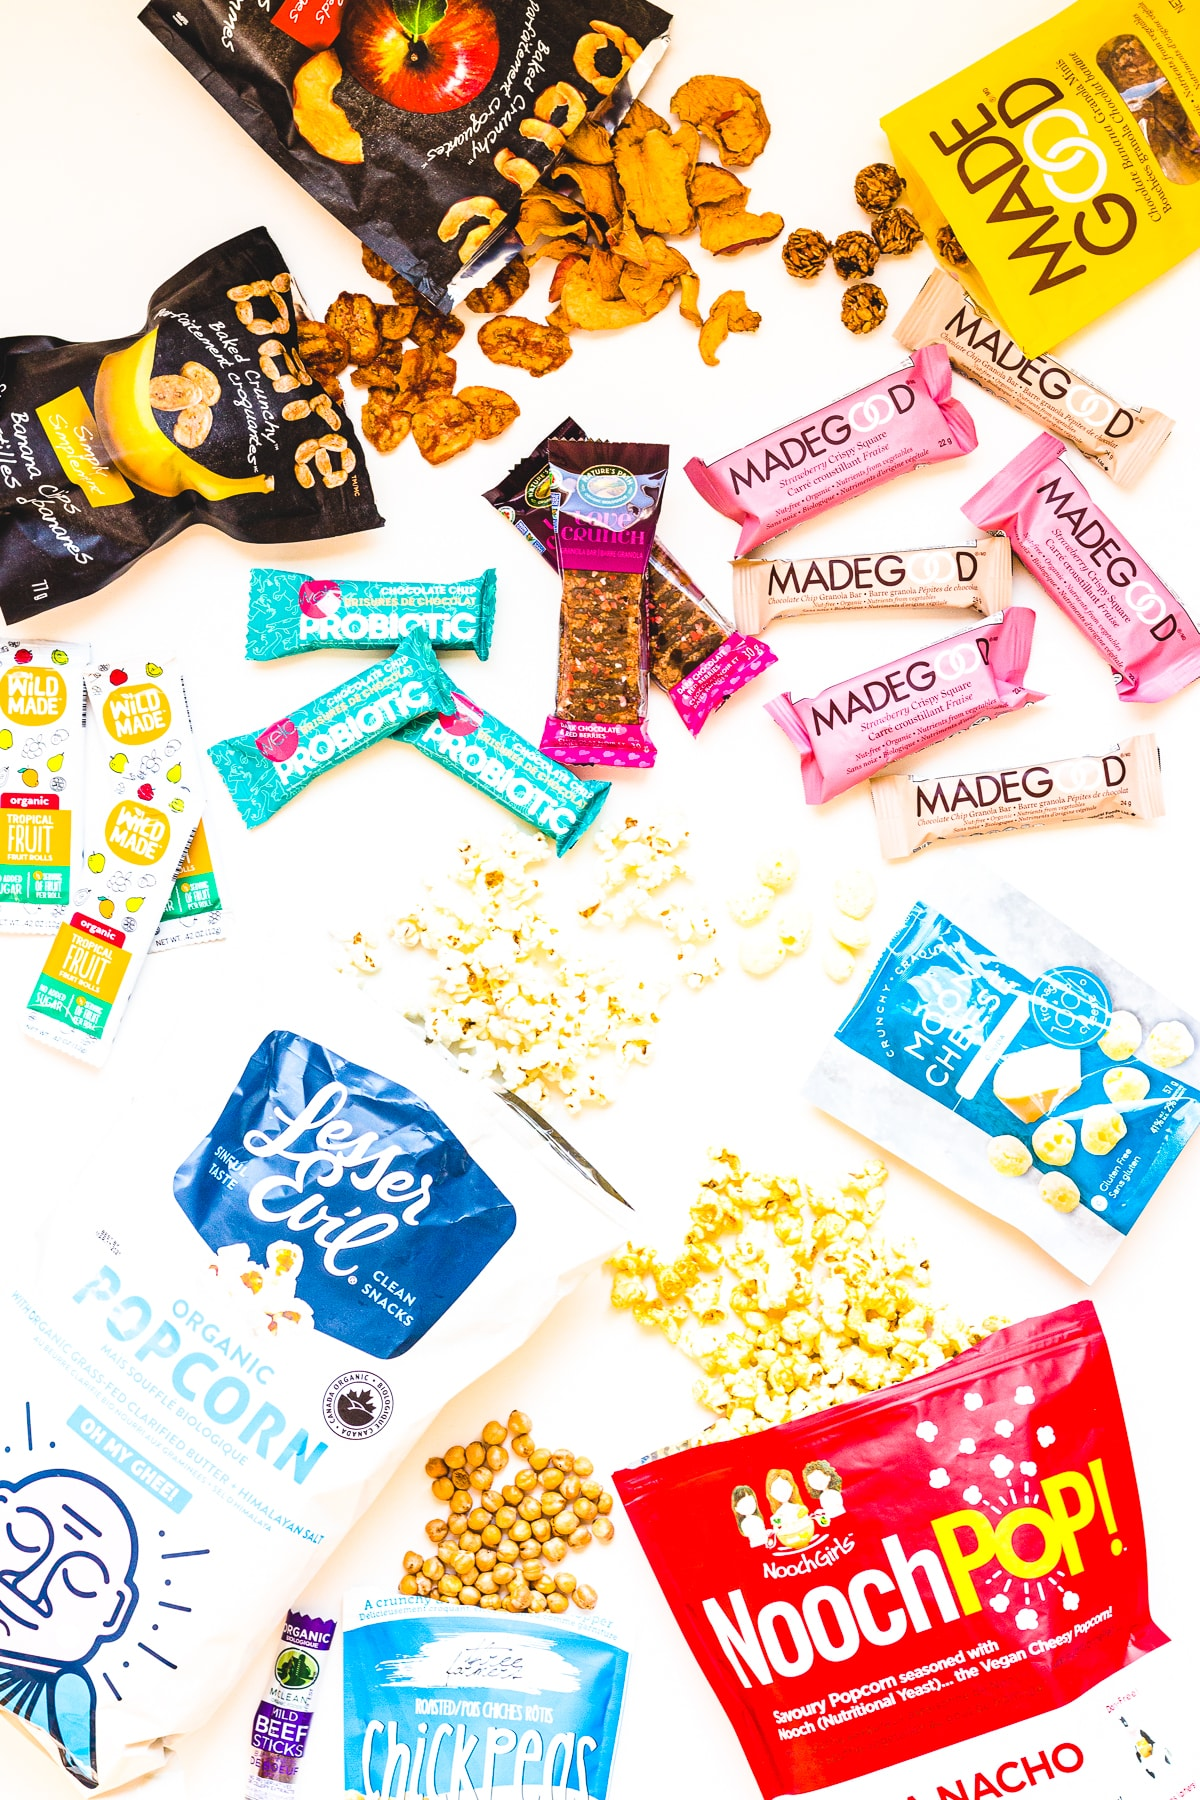 Overhead photo of a variety of healthy packaged snacks.